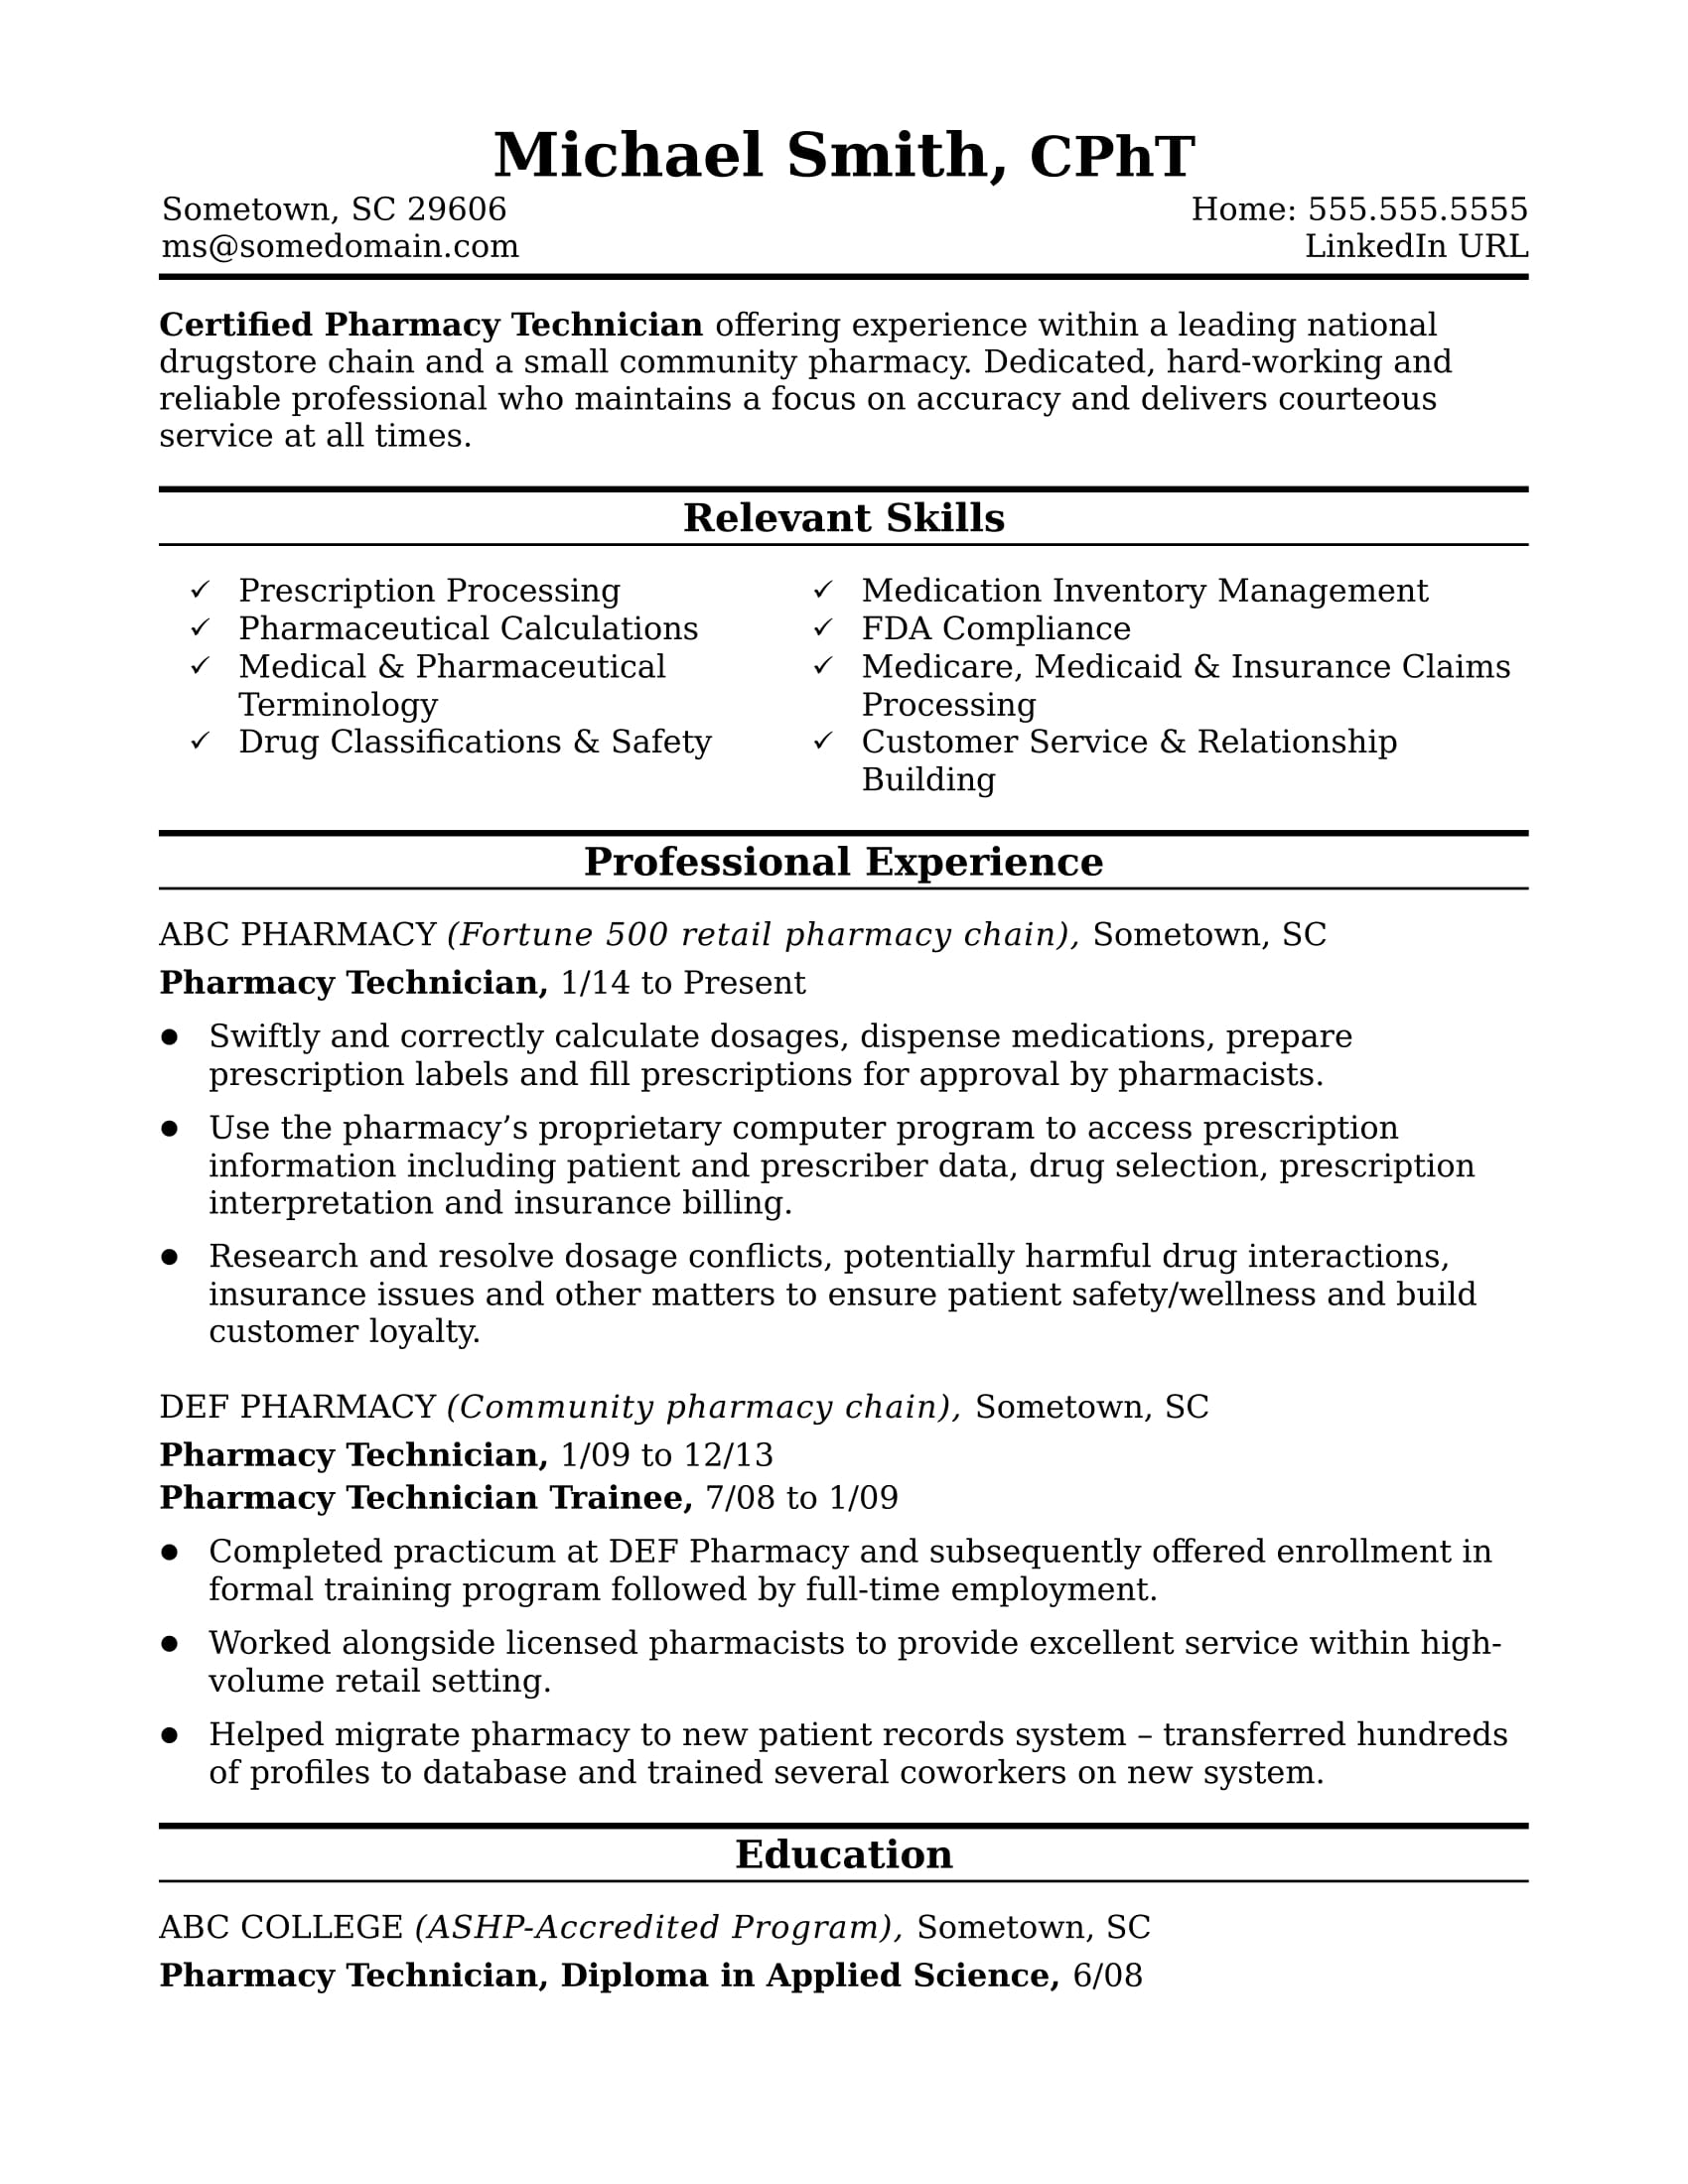 Sample Resume For A Pharmacy Technician  Employment Resume